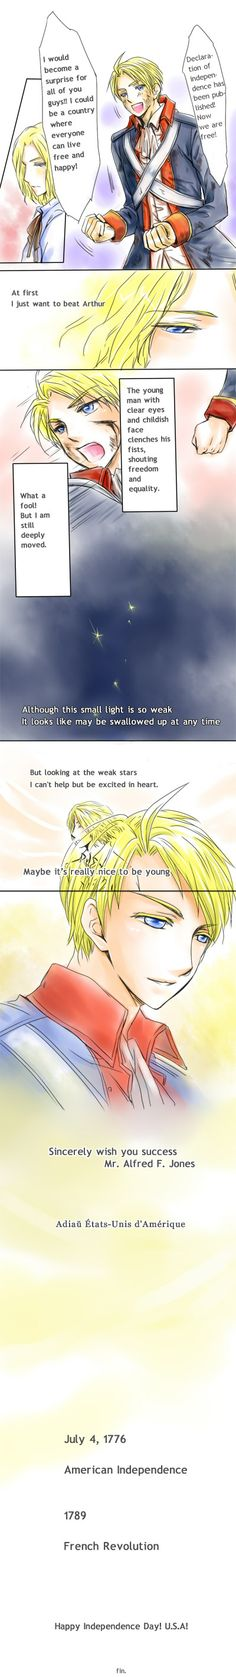 """""""APH manga.Francis,Alfred. Star by Vladimirka.deviantart.com on @deviantART - I really like how this shows Francis' shifting opinion about the American Revolution - and how true to history it is. The French initially saw it as yet another theatre in their conflict against Britain, but then the French veterans who helped fight for American independence came back...and they'd adopted the same ideas."""""""